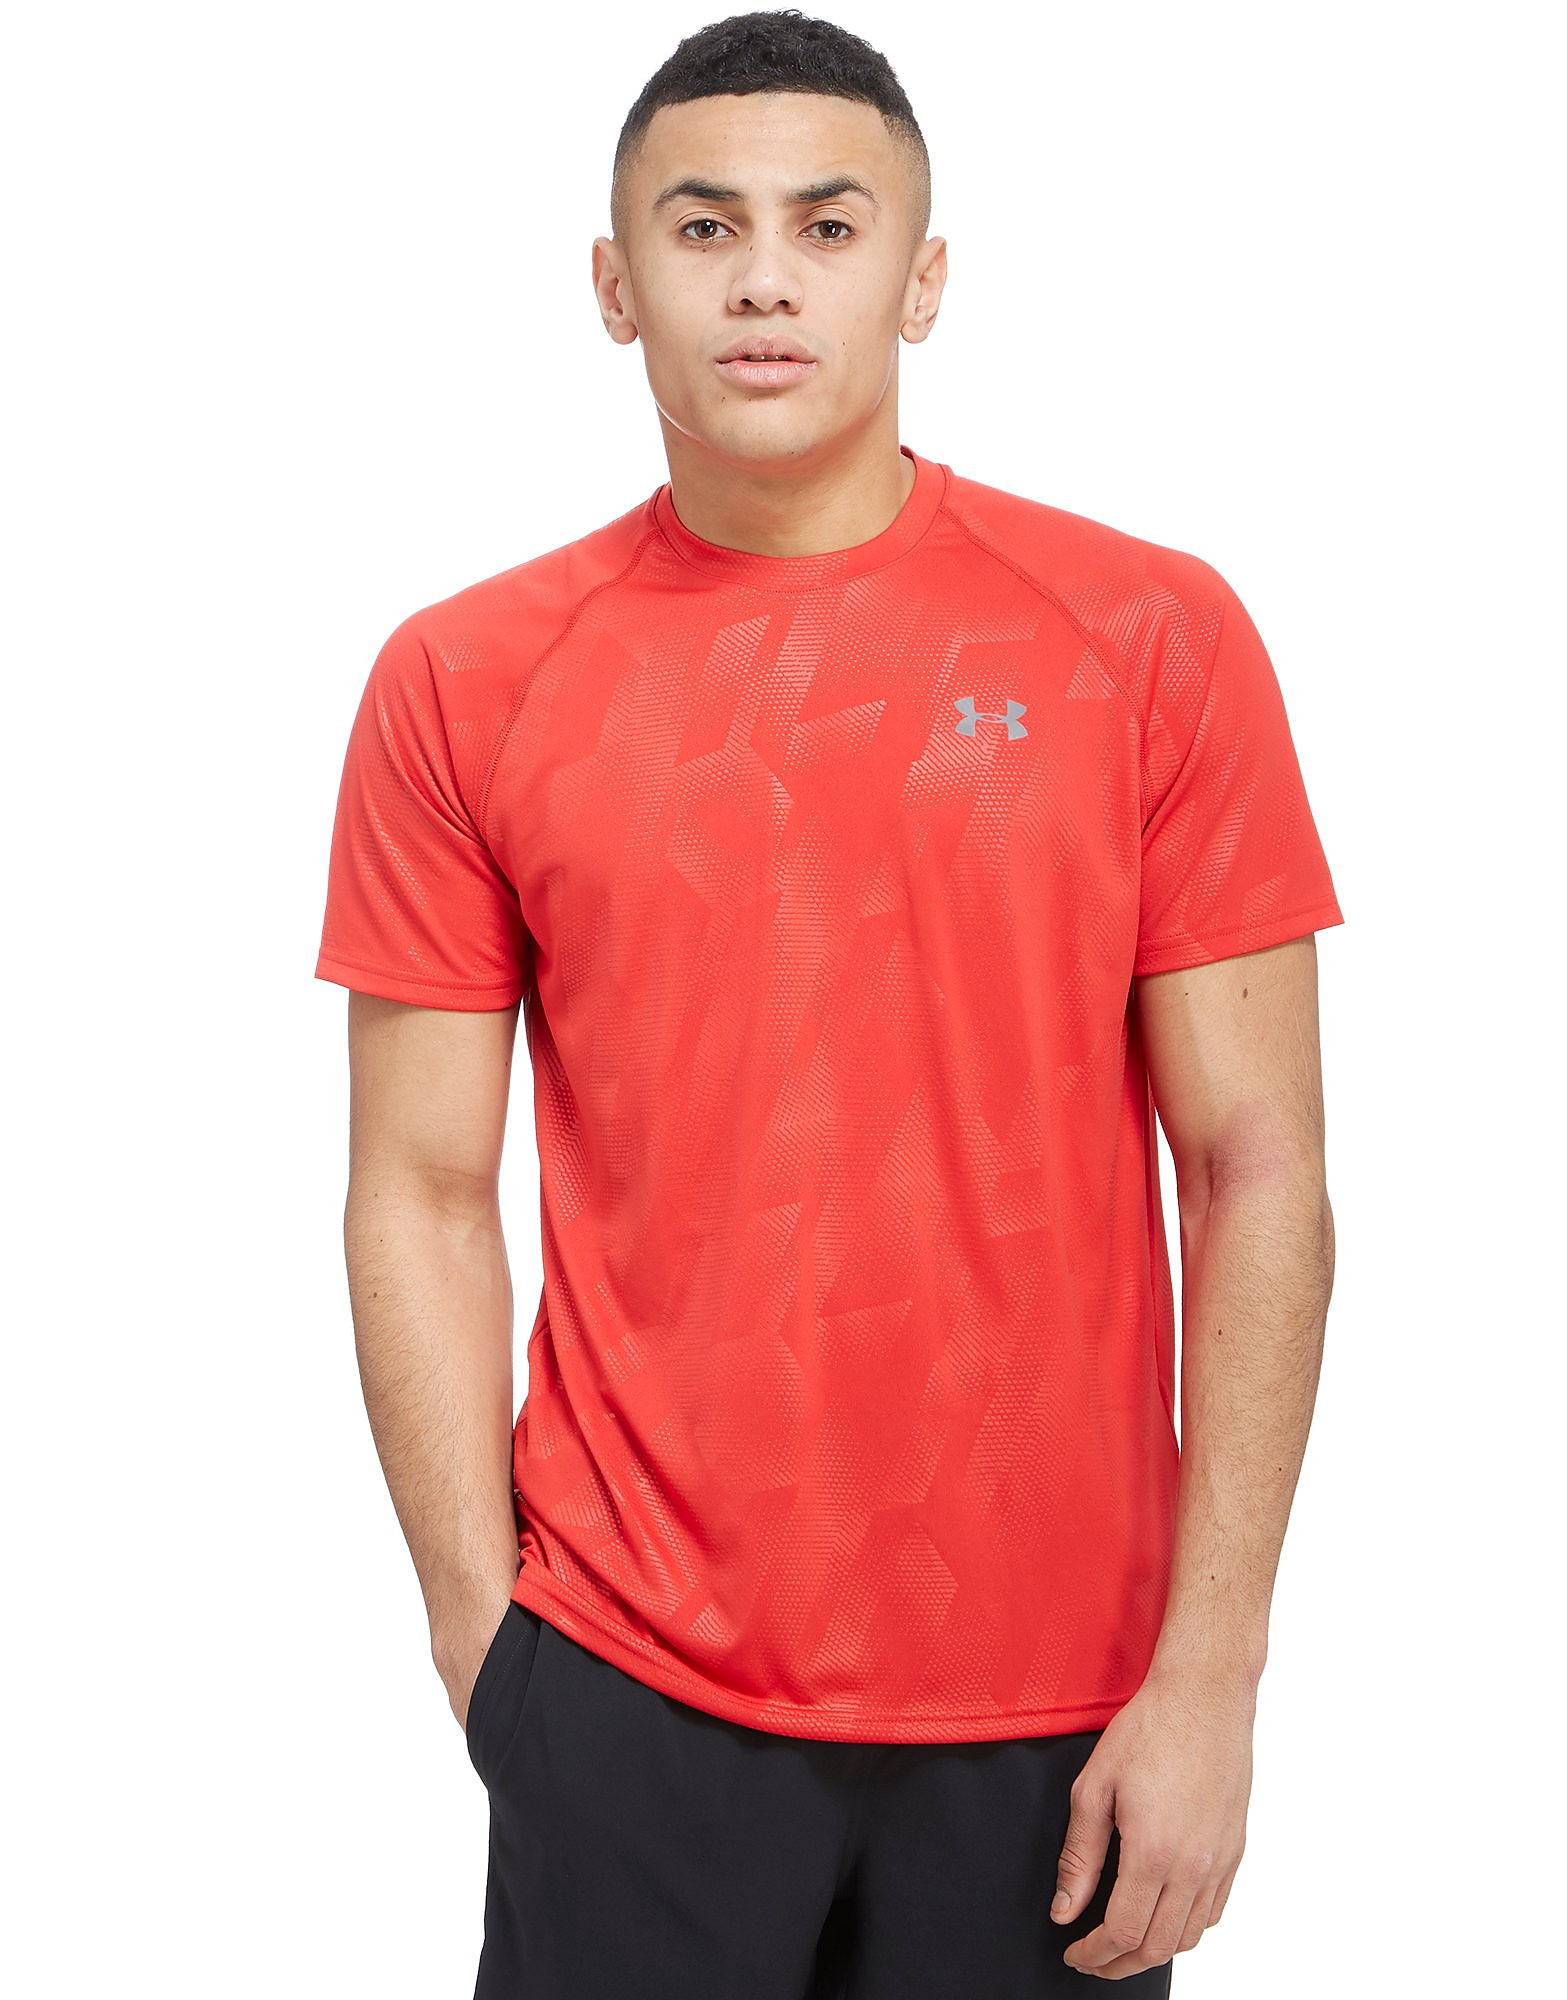 Under Armour Tech Pattern T-Shirt